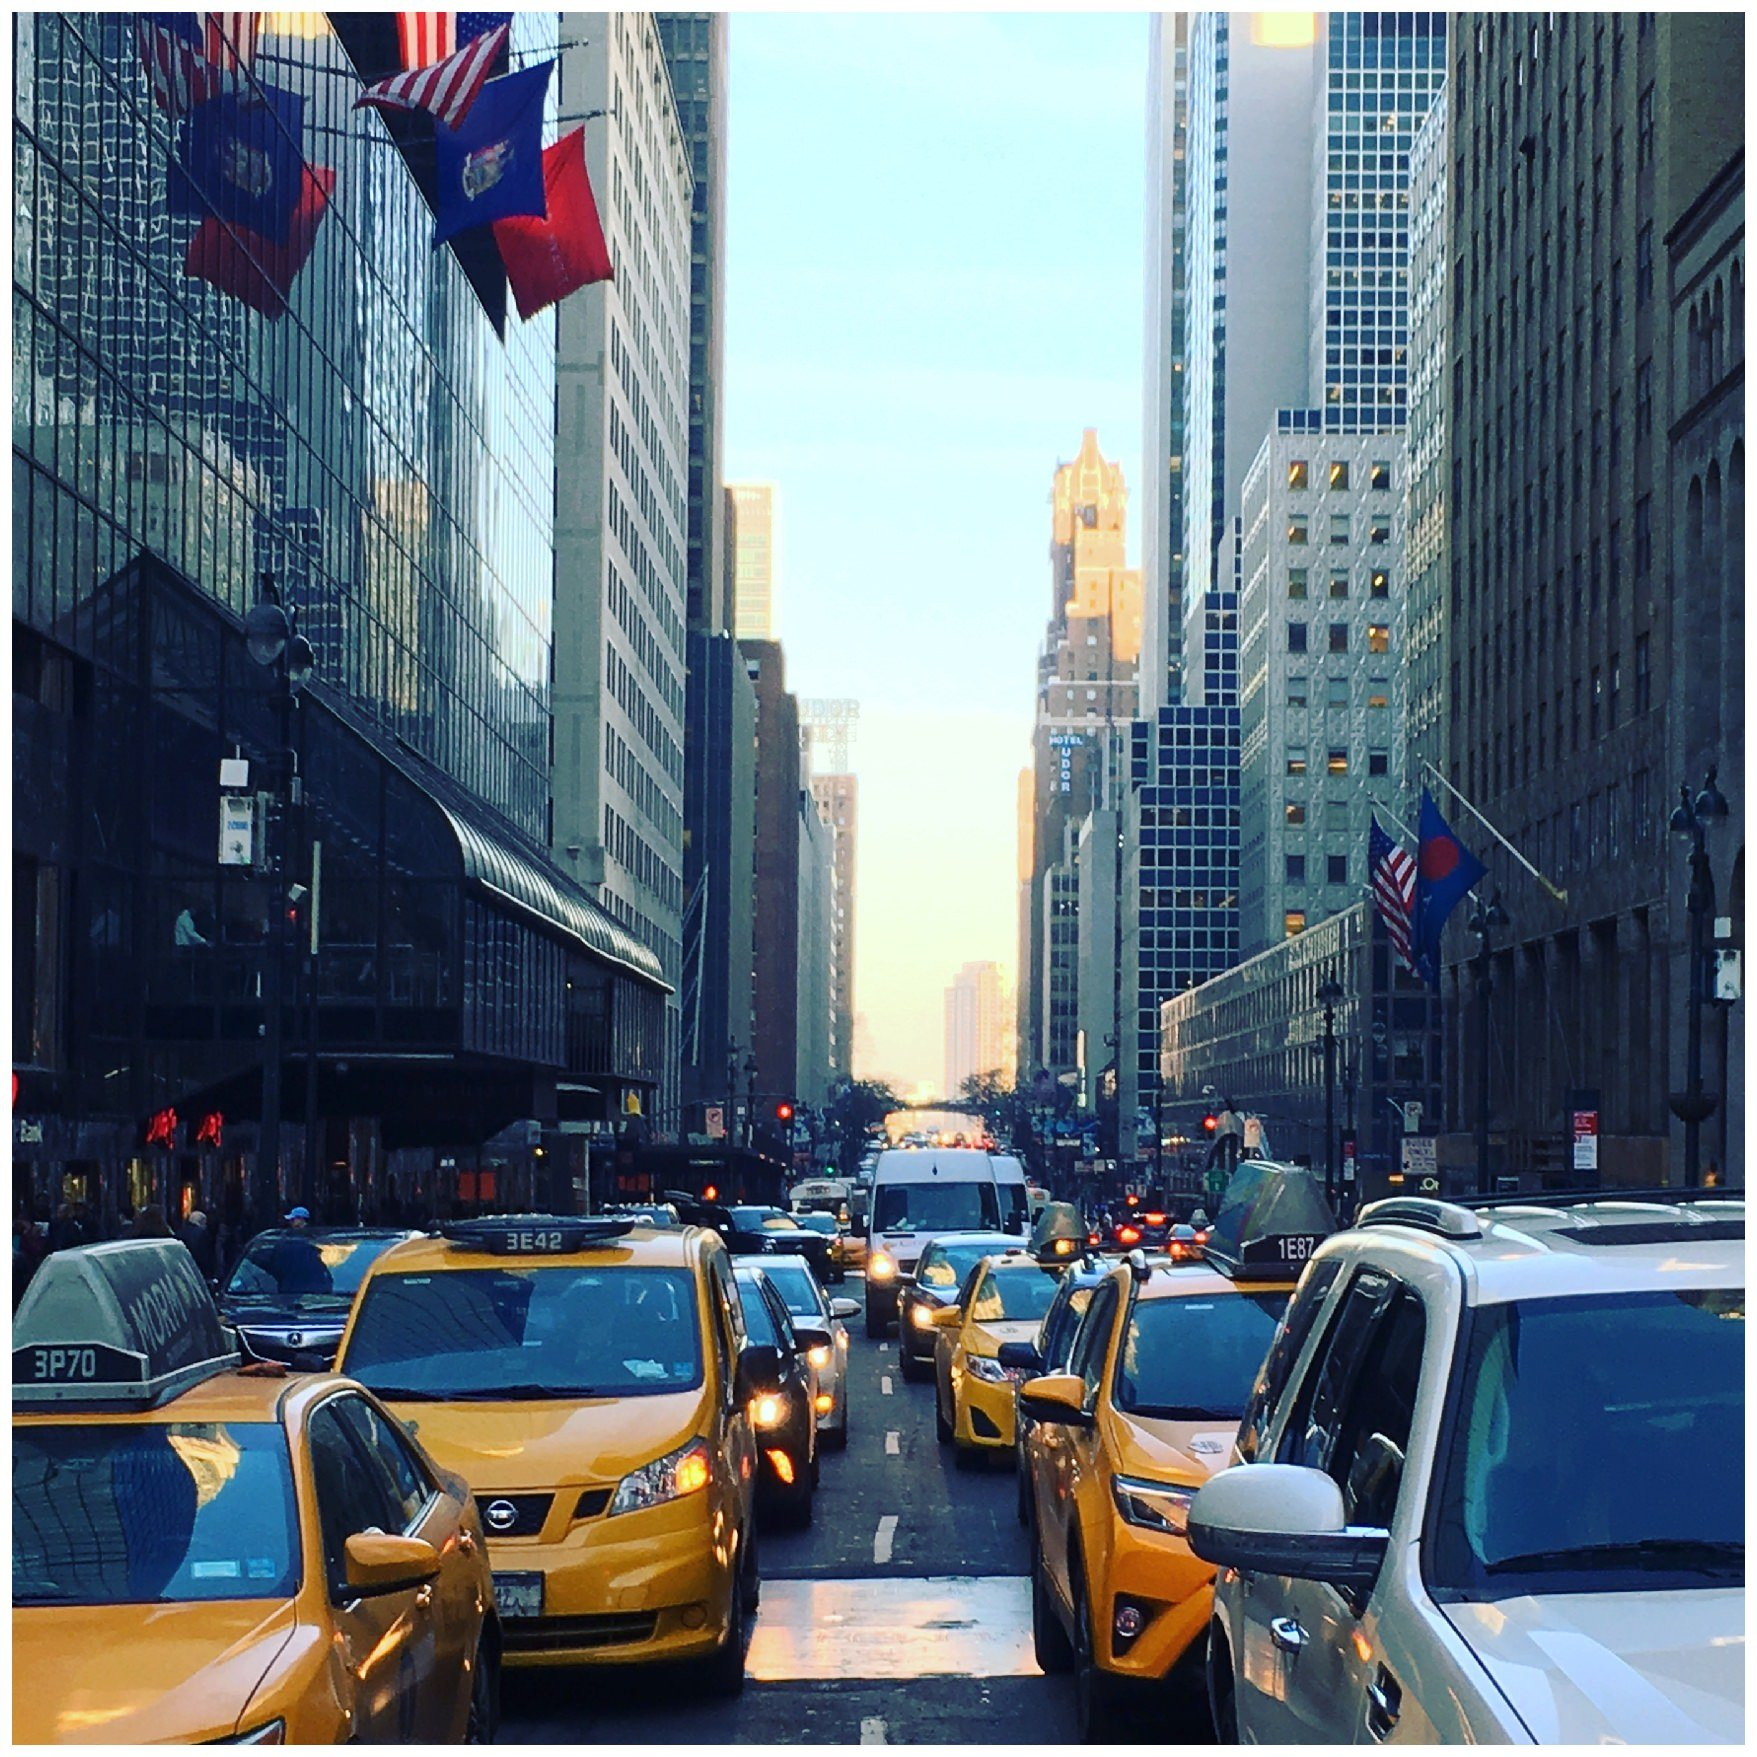 cars filling the streets particularly with yellow cabs in new york city